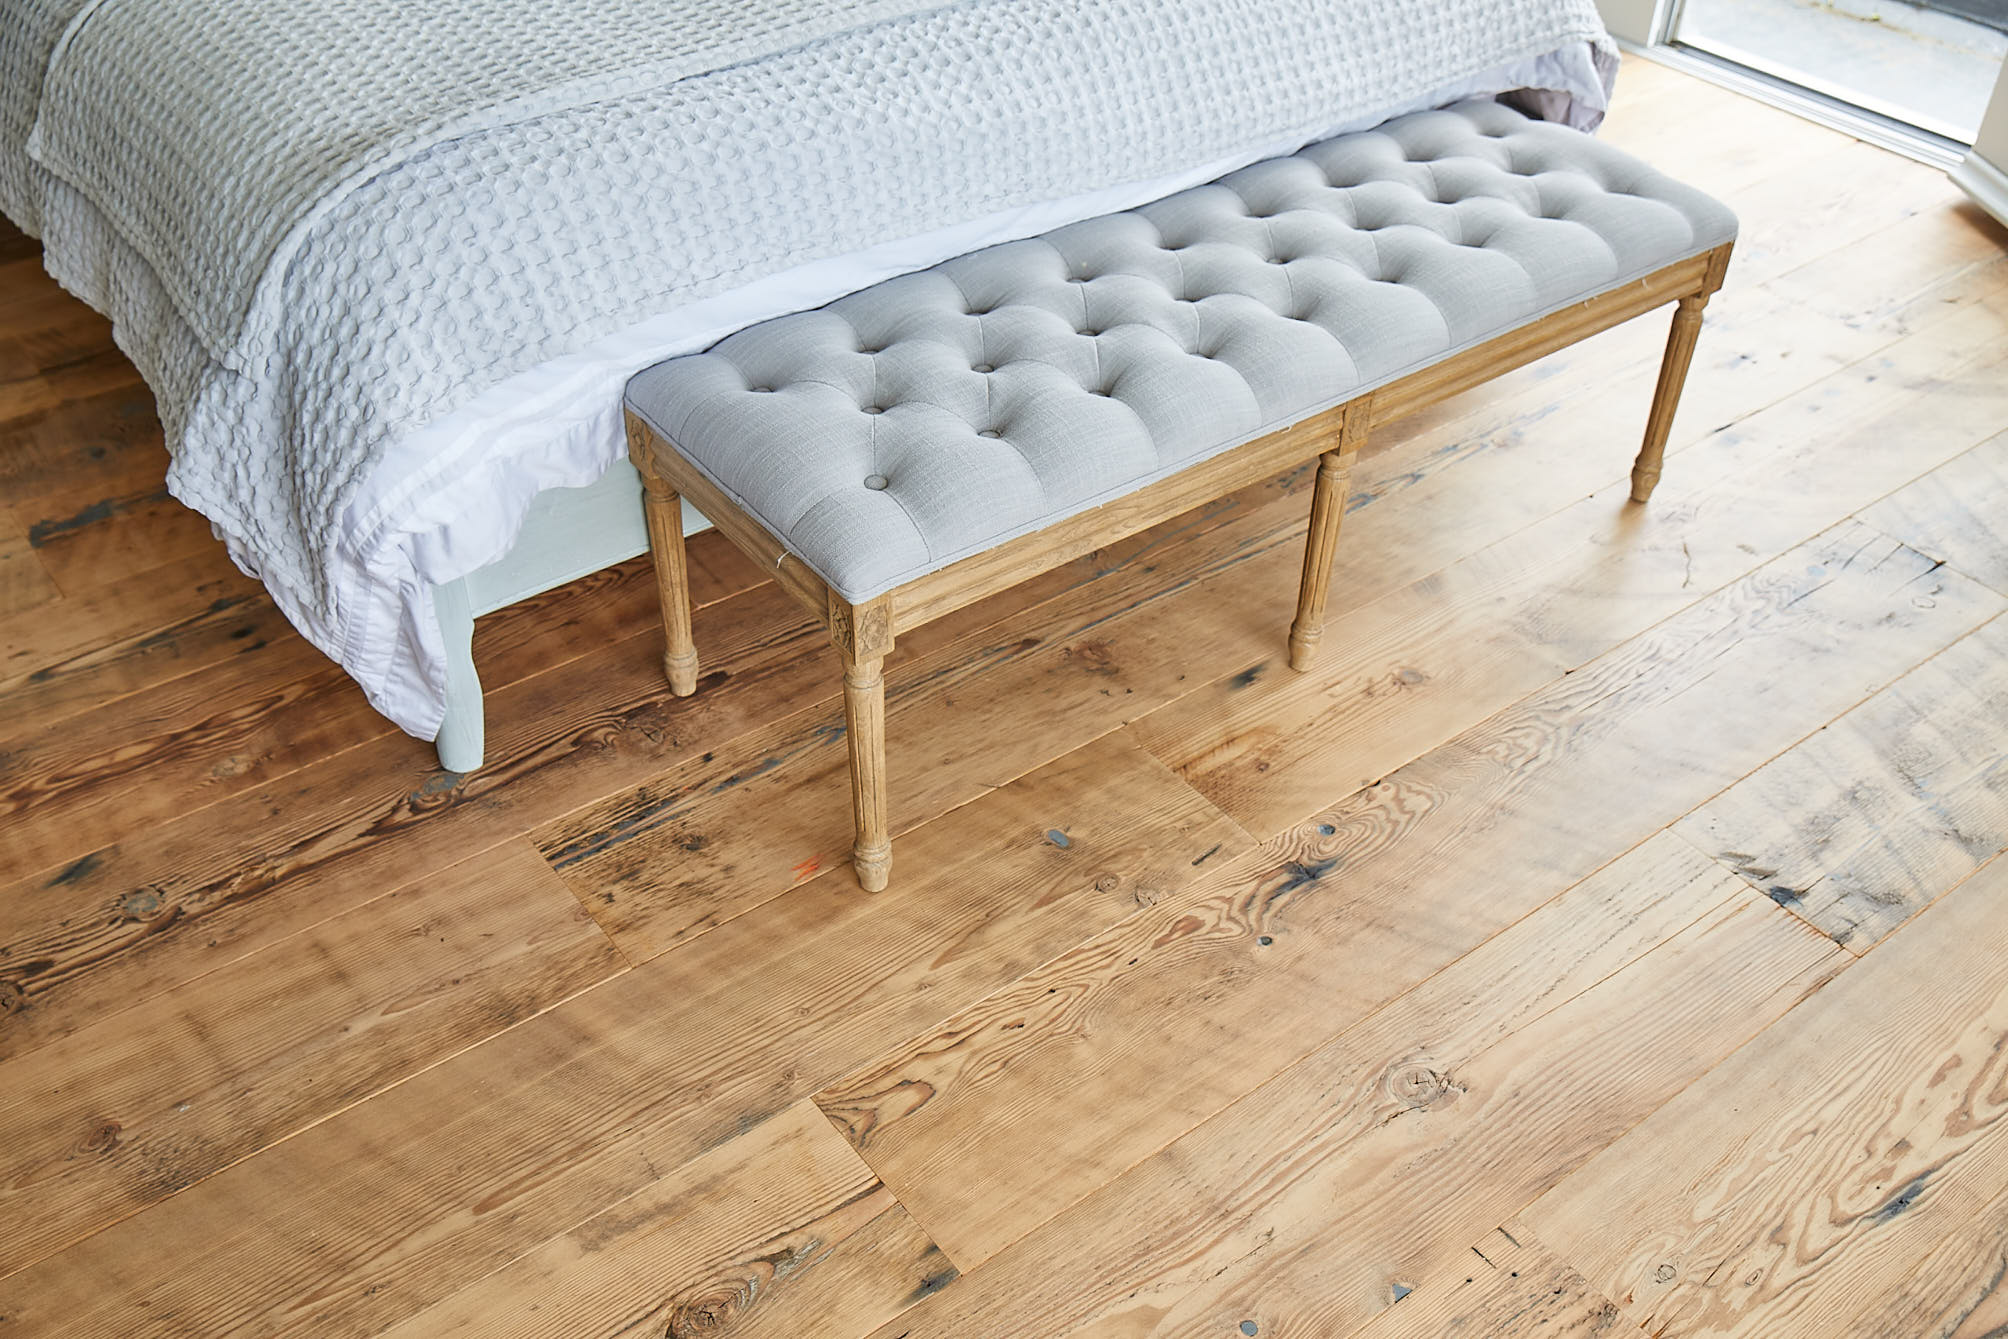 Upholstered seat on reclaimed rustic flooring by The Main Company